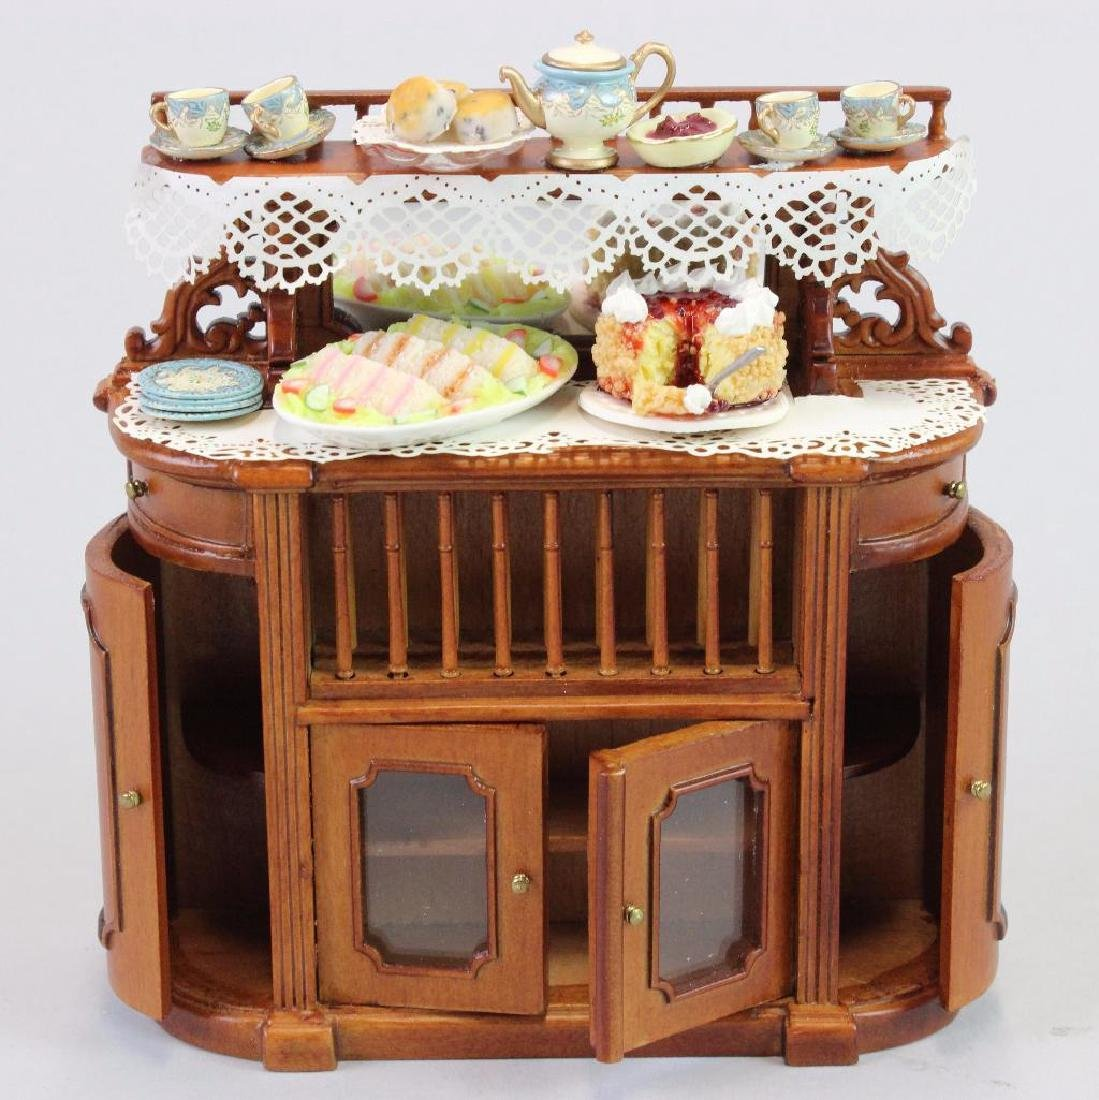 Side board Bespaq,  artists cakes, tea for two set